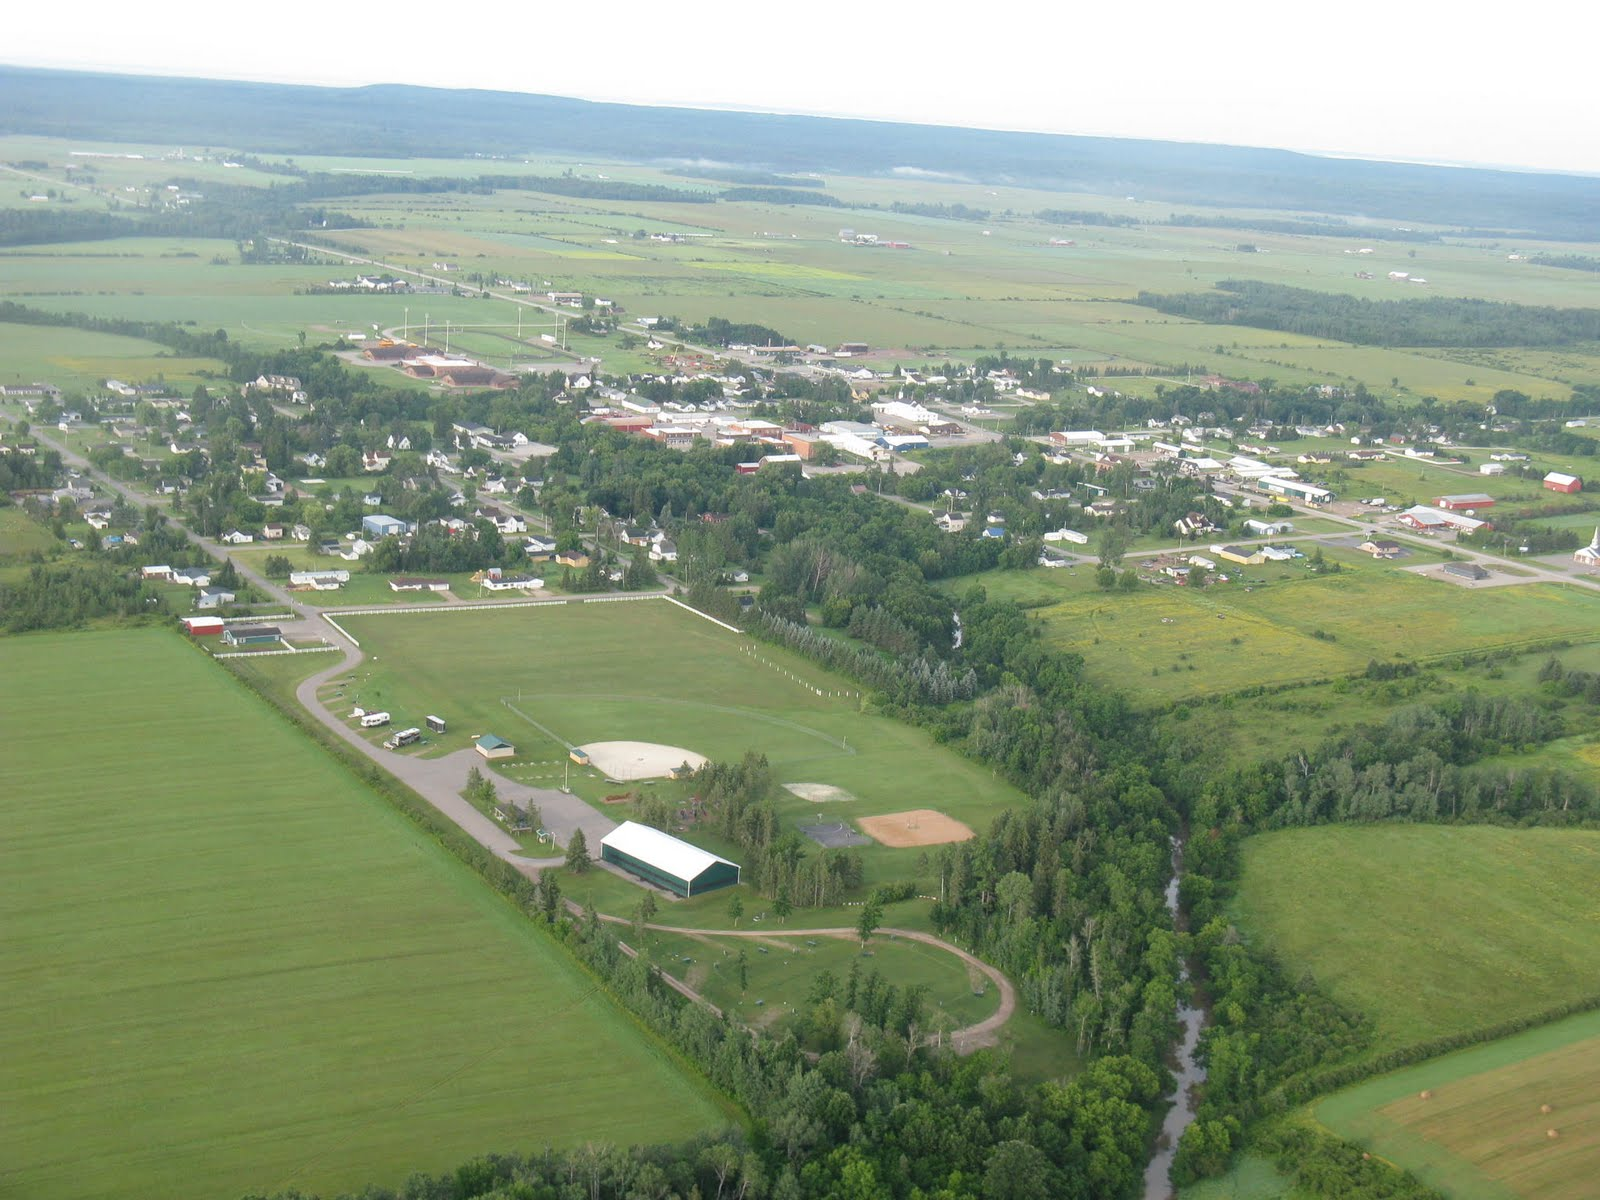 Photo: Pickford Michigan is 25 miles south of Saulk St Marie